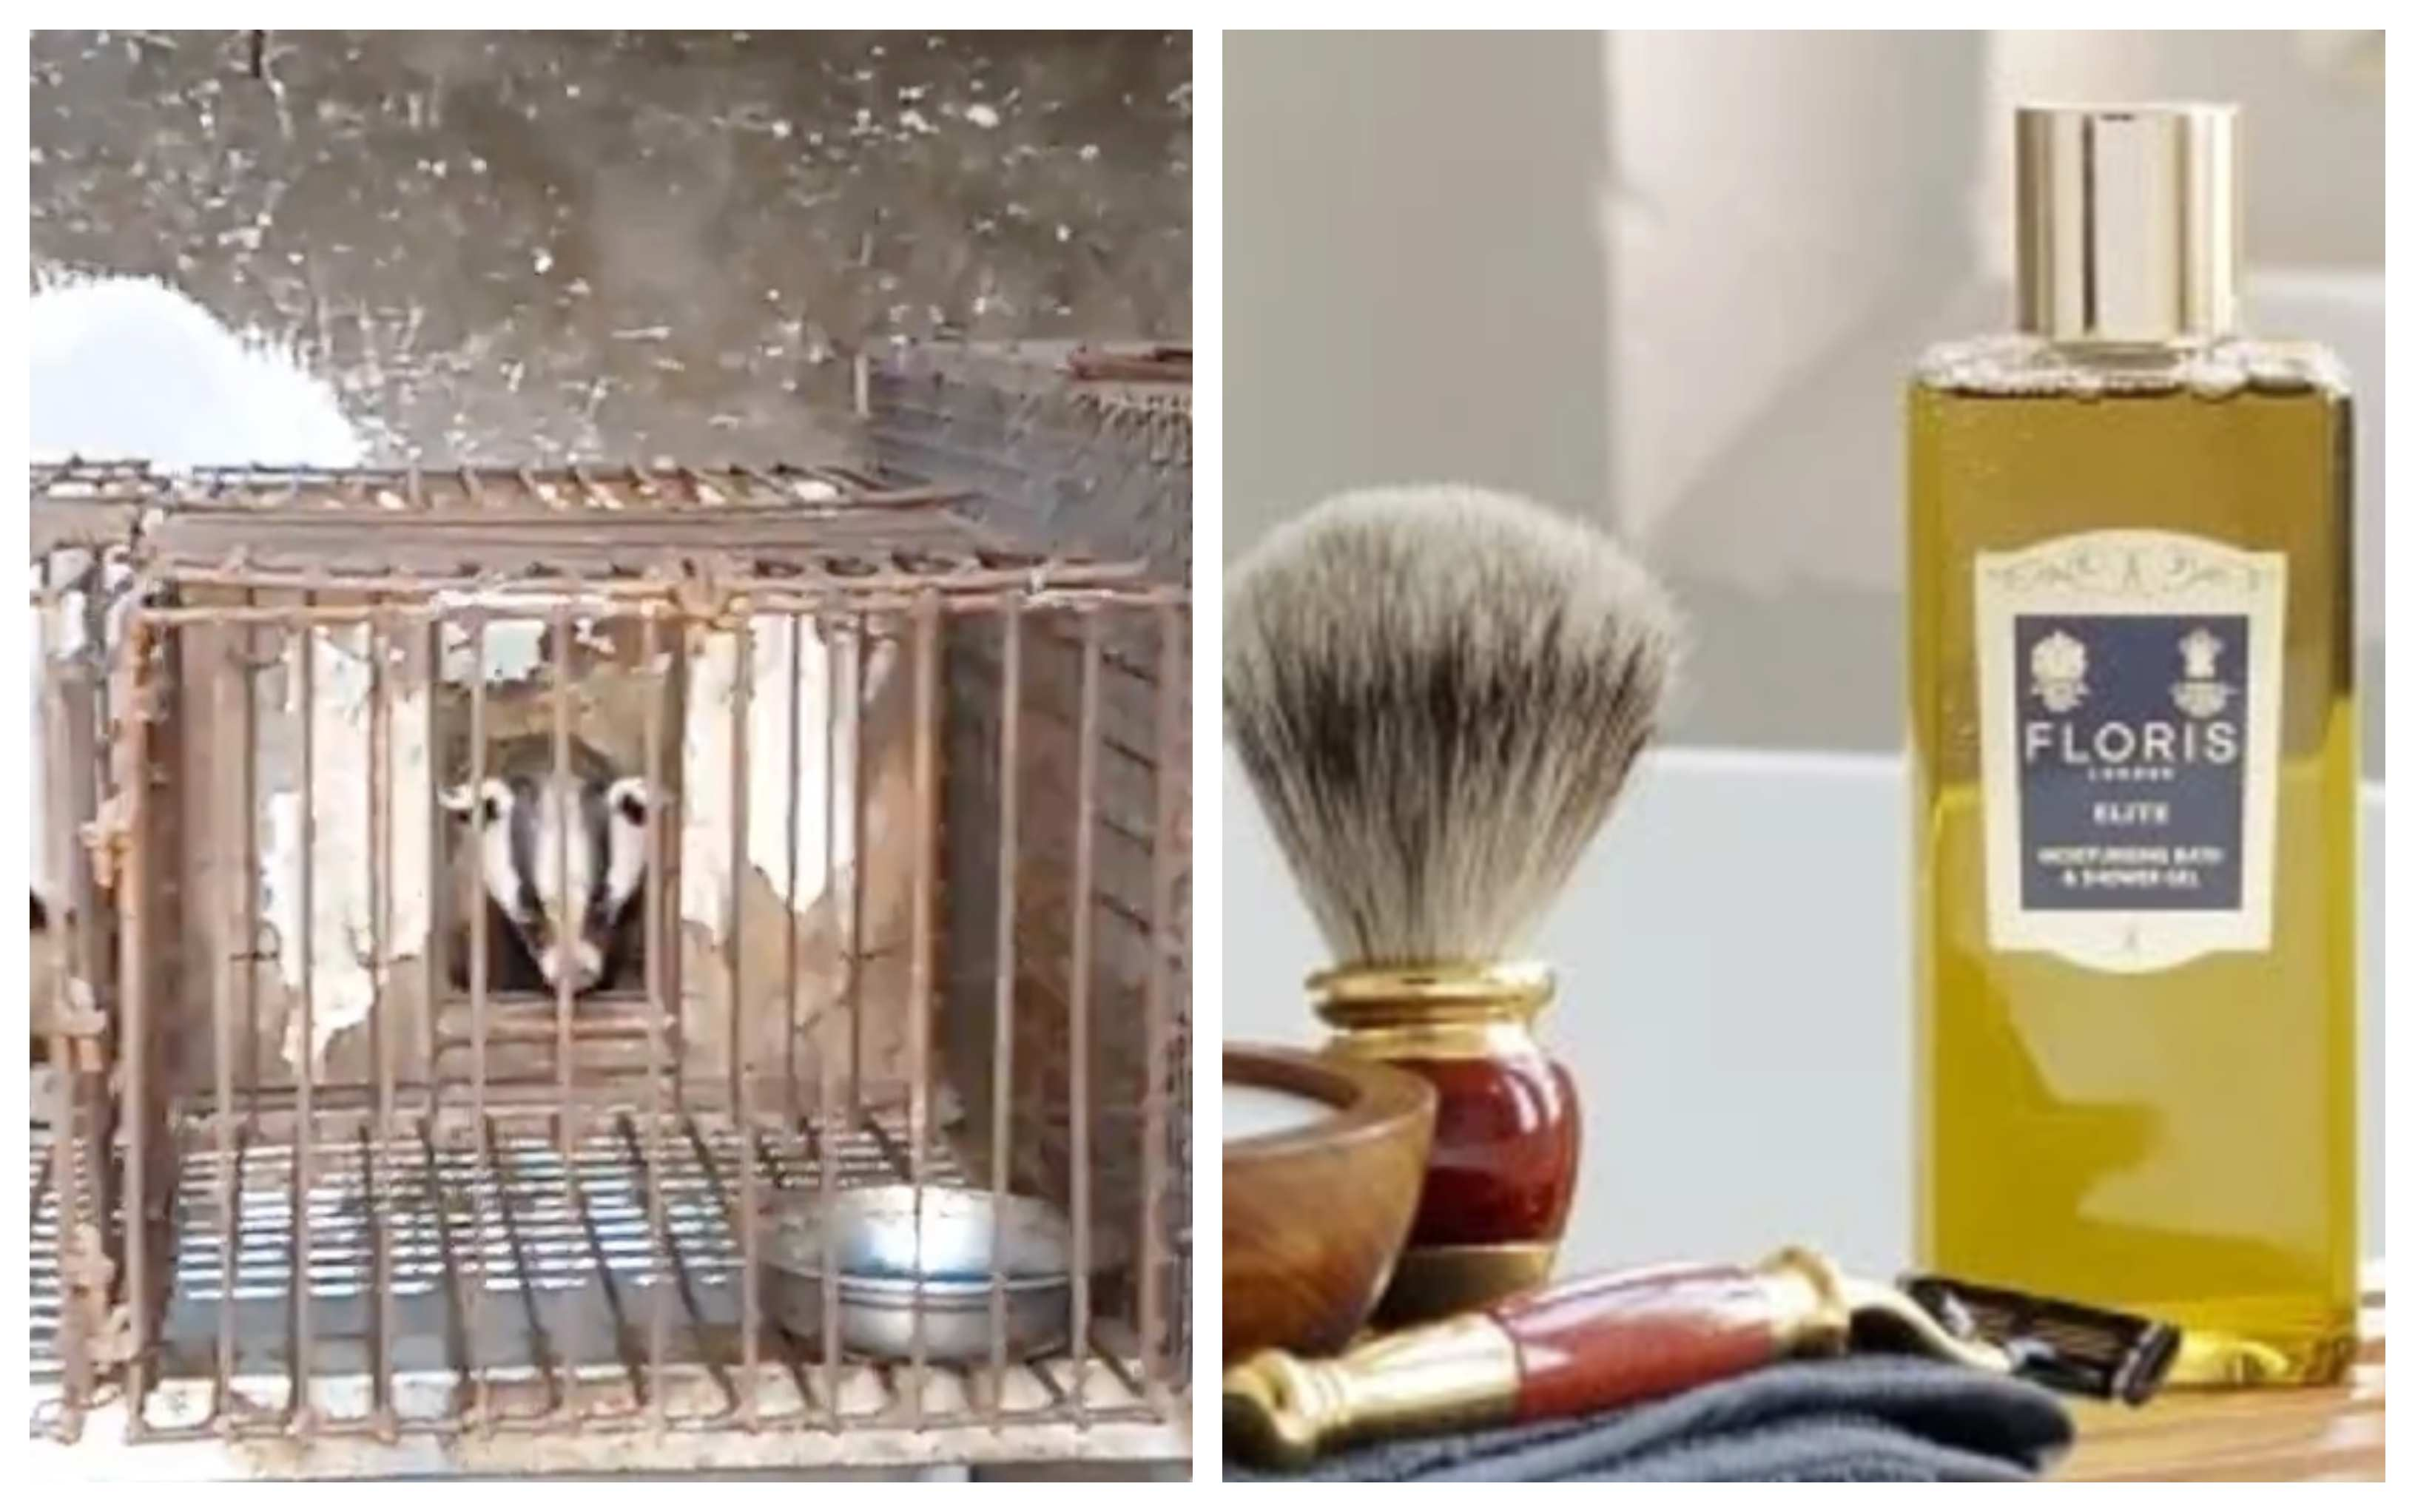 Badger fur industry and Floris London products